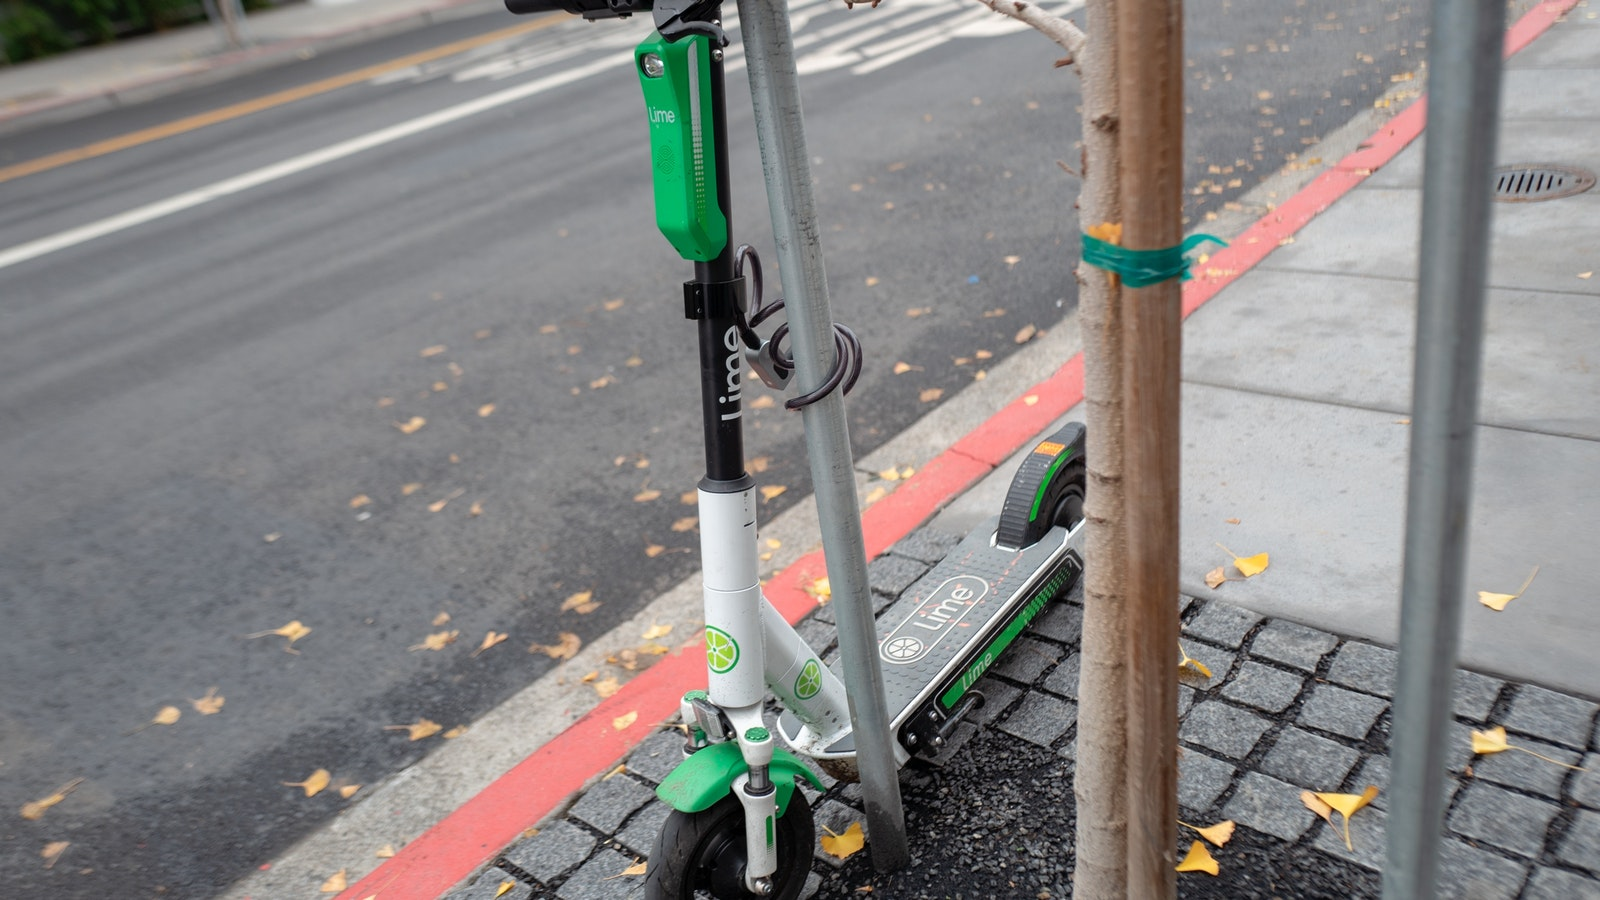 A Lime scooter in San Francisco last December. Photo by AP